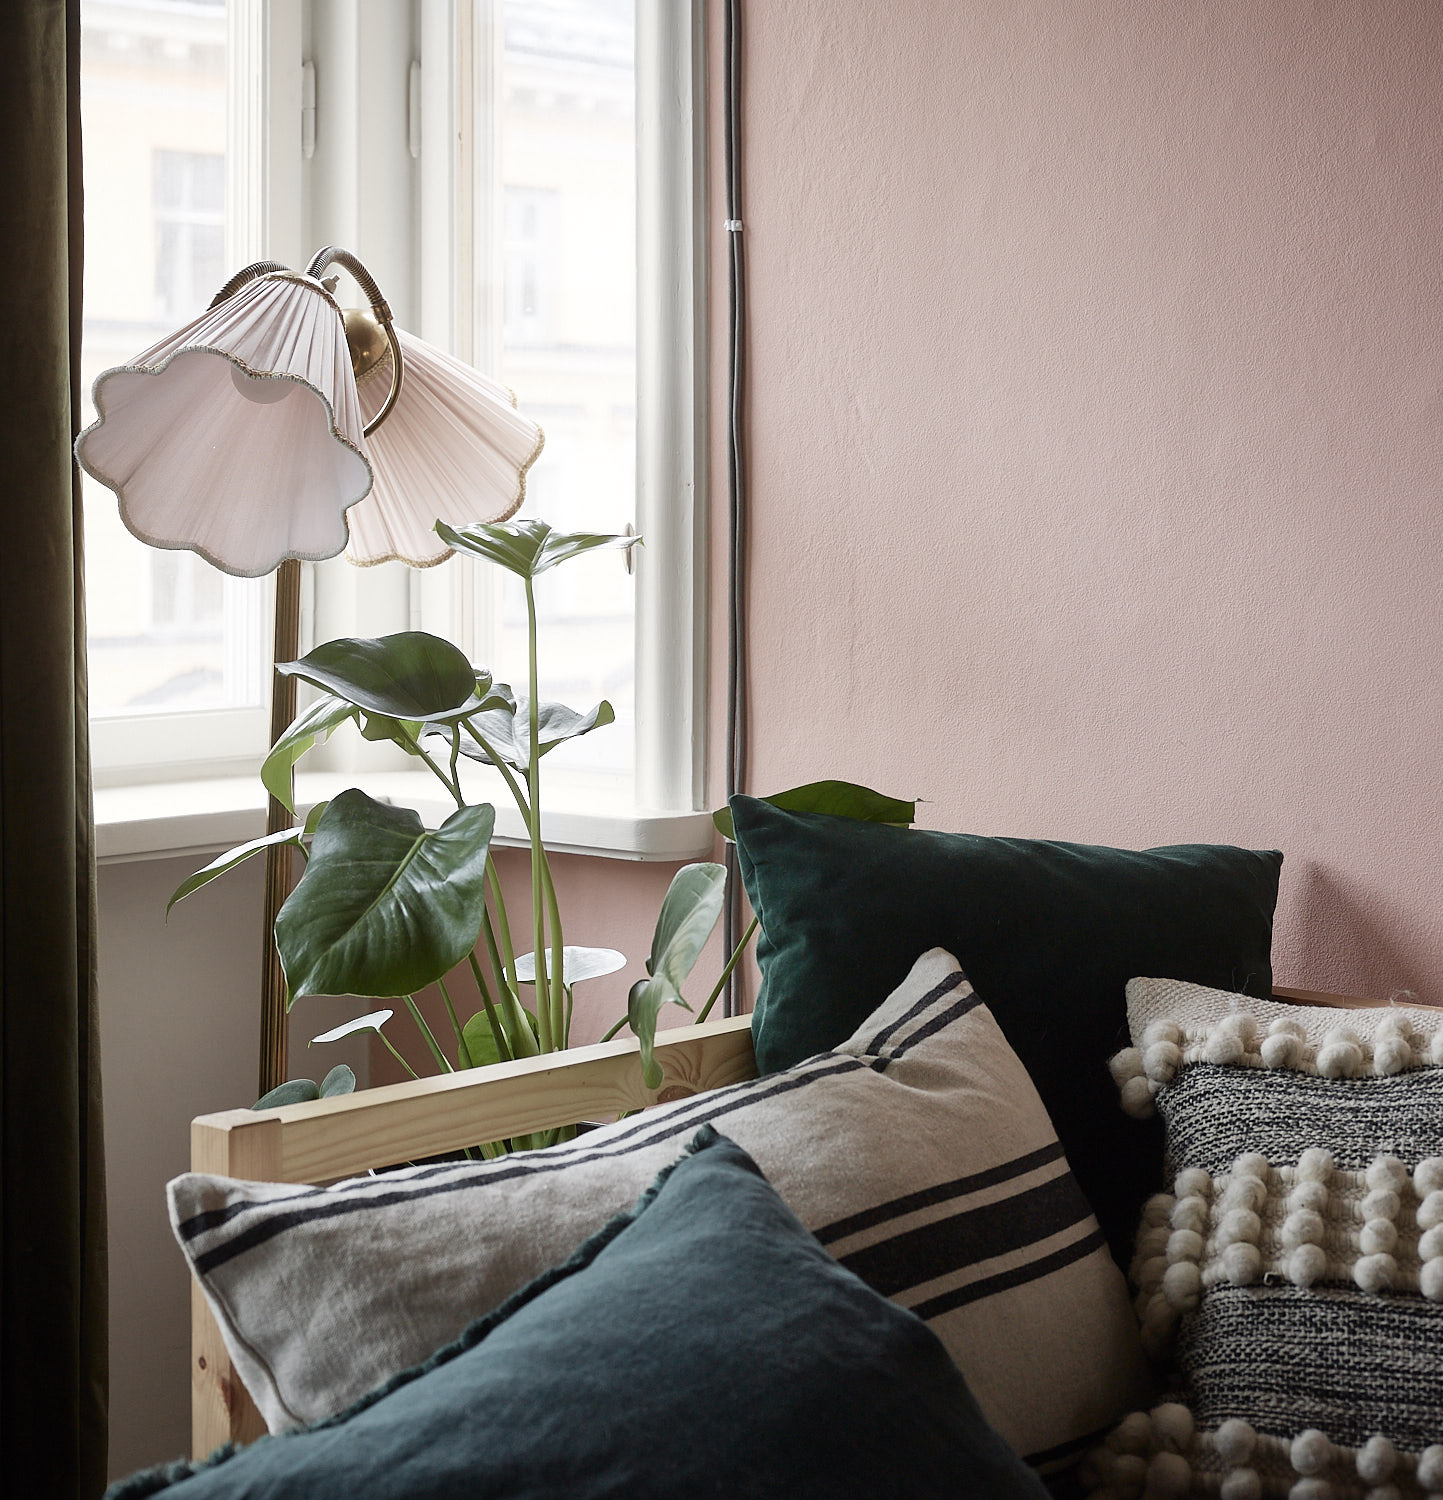 7. Mix Textures and Colors To Make Your Pillows More Interesting